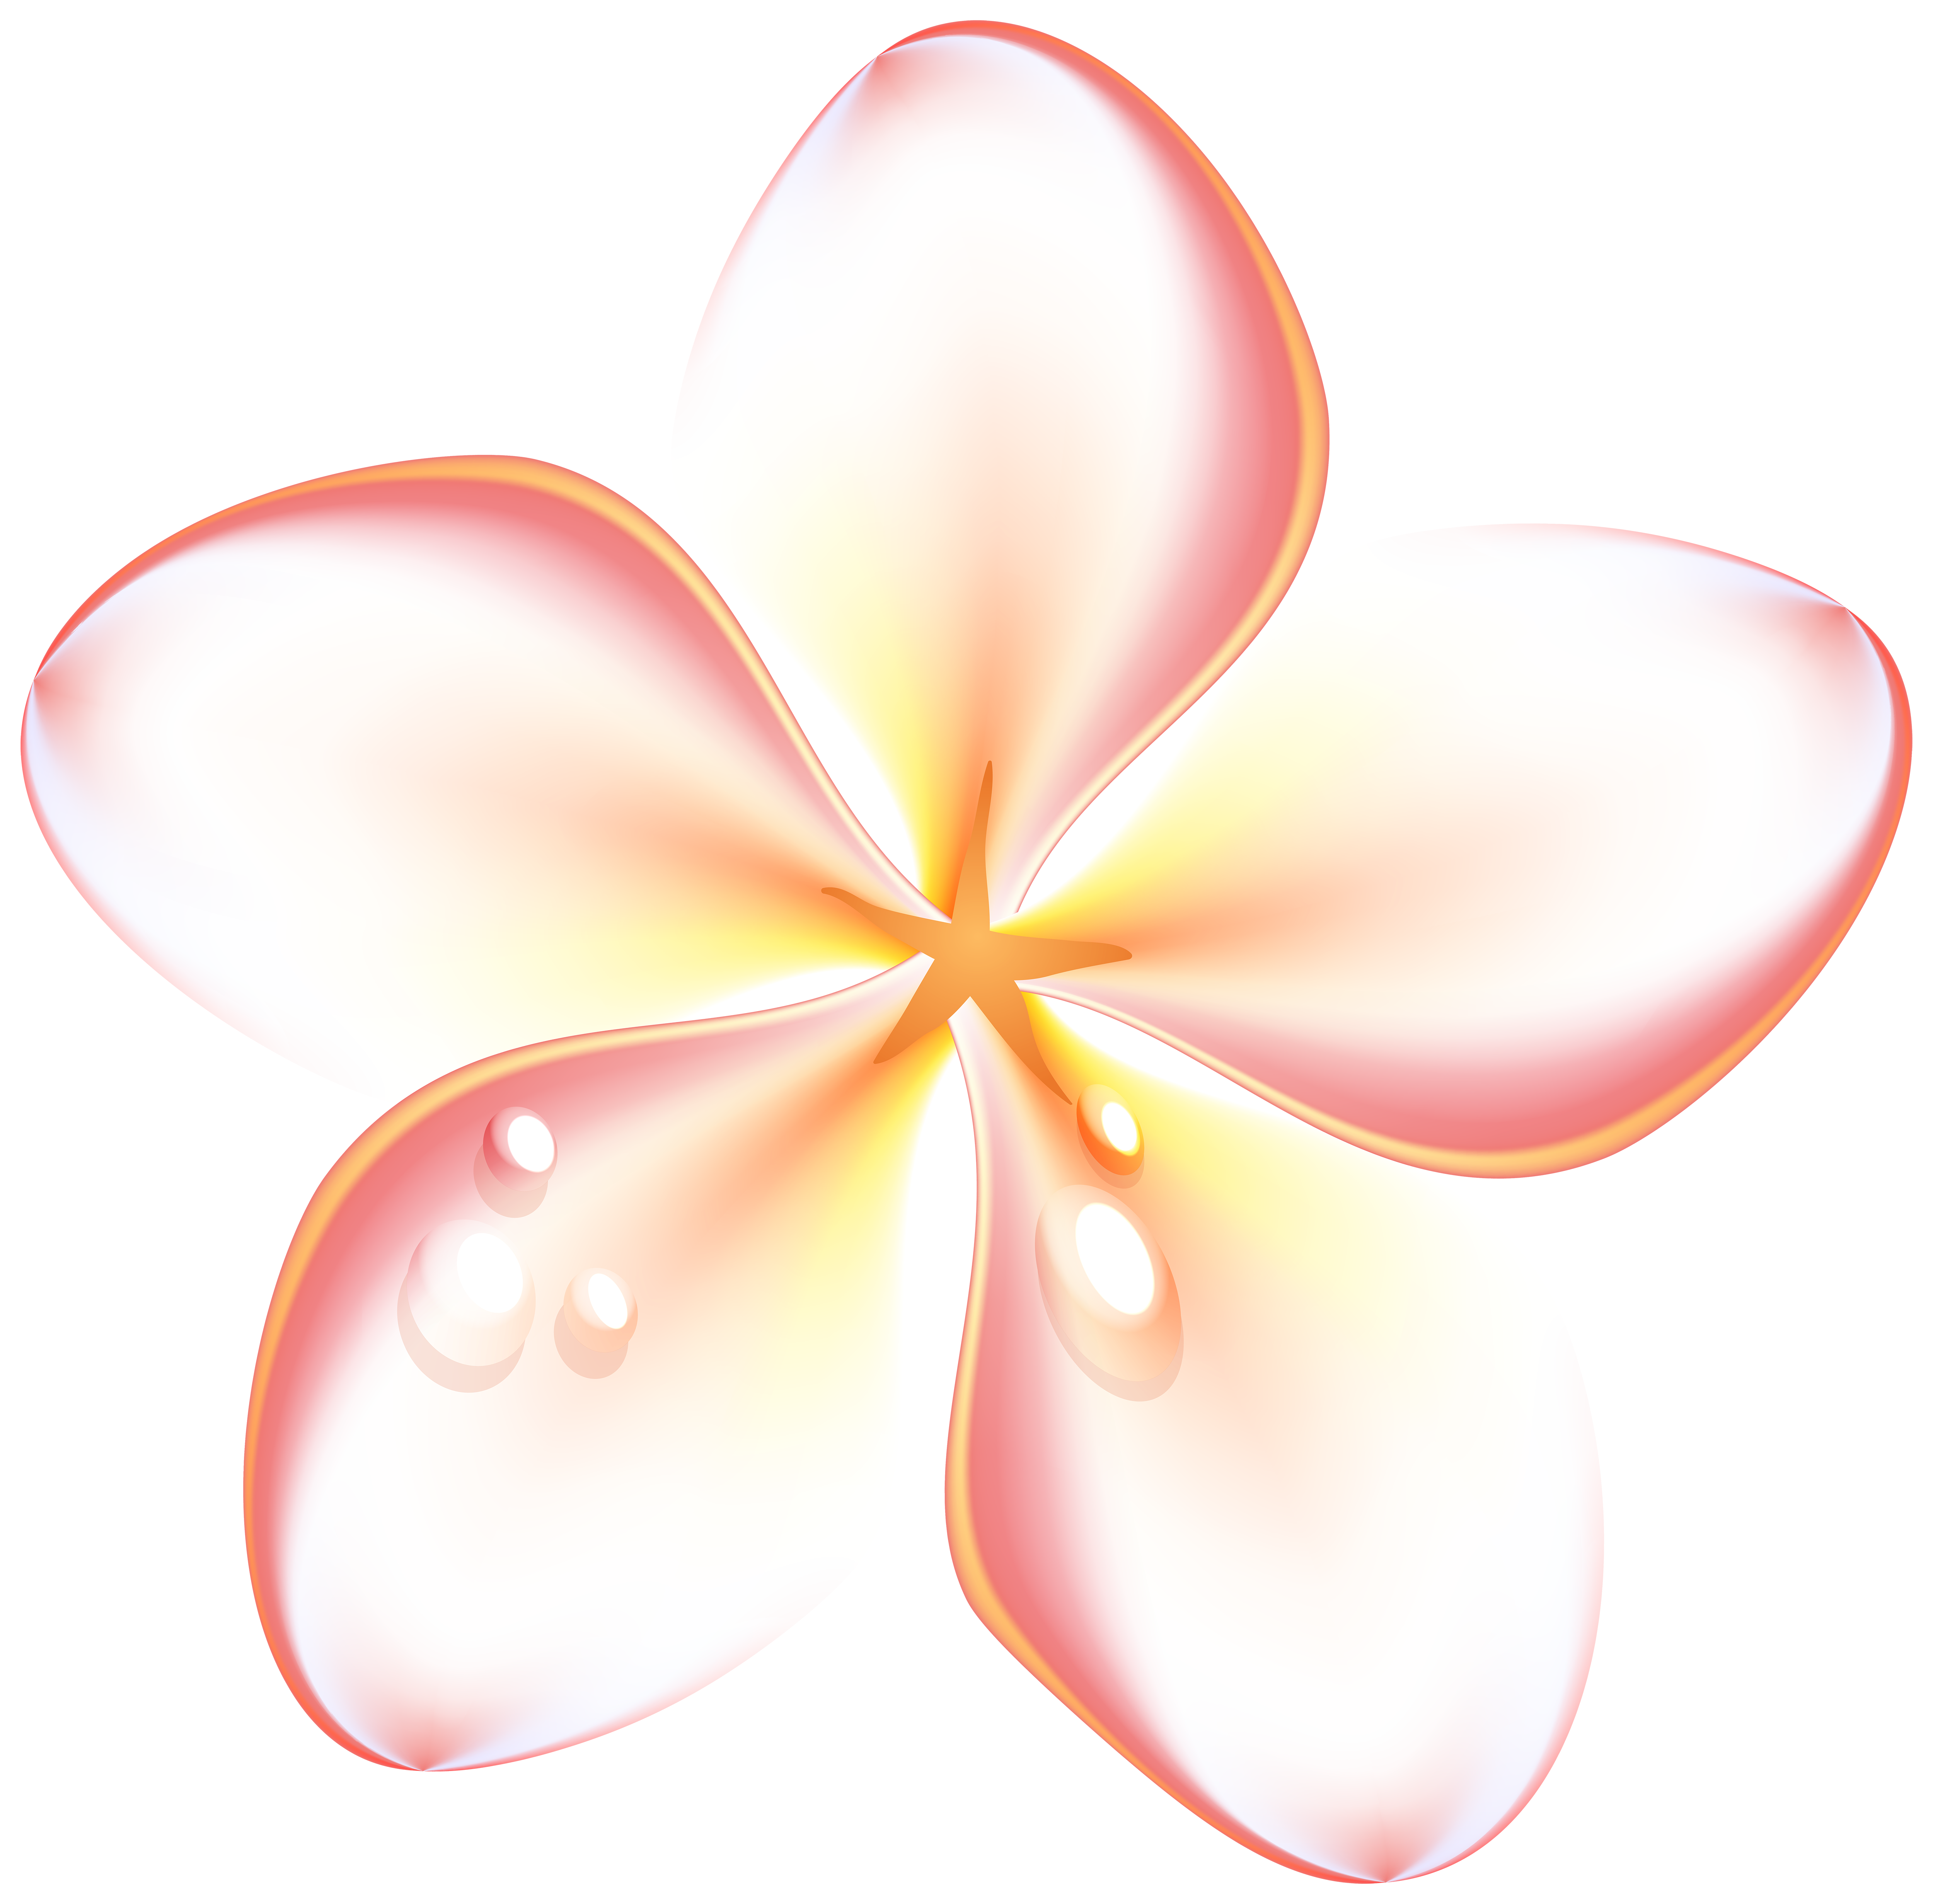 Summer flower clipart vector free download Exotic Summer Flowers Transparent PNG Clip Art Image | Gallery ... vector free download